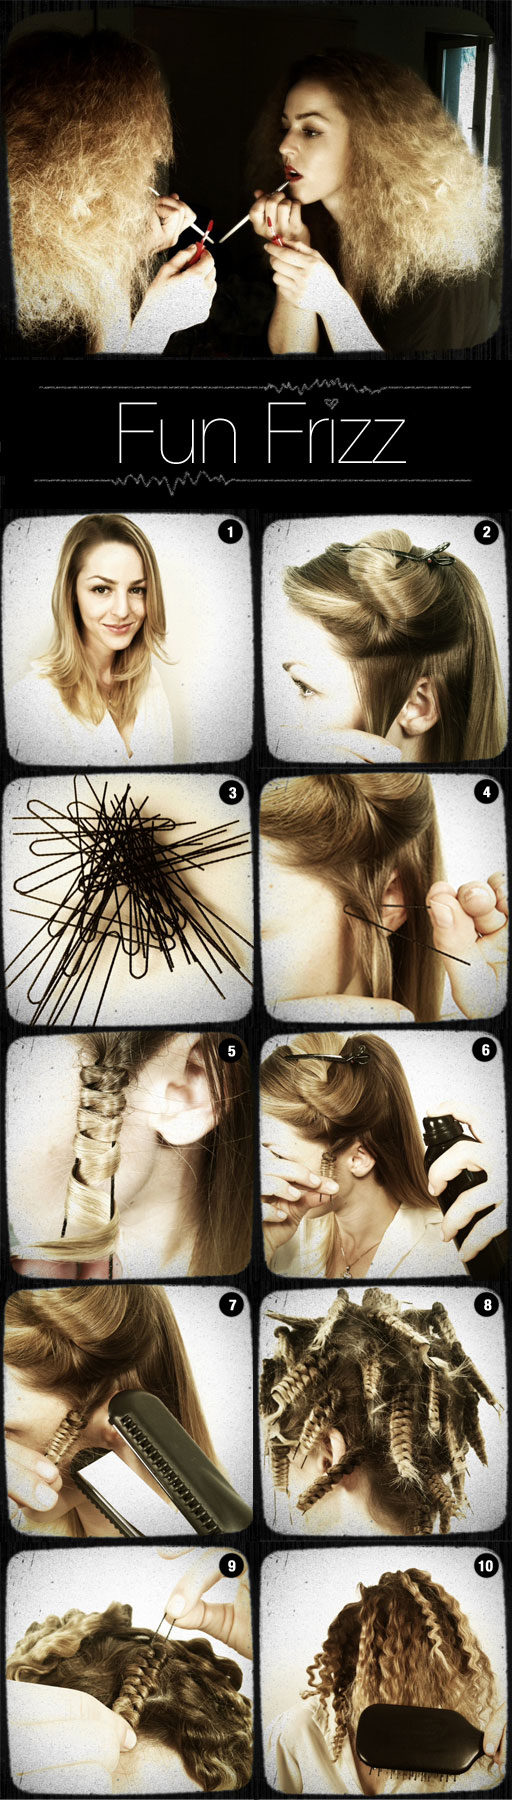 How To Make Fun Frizz Hair